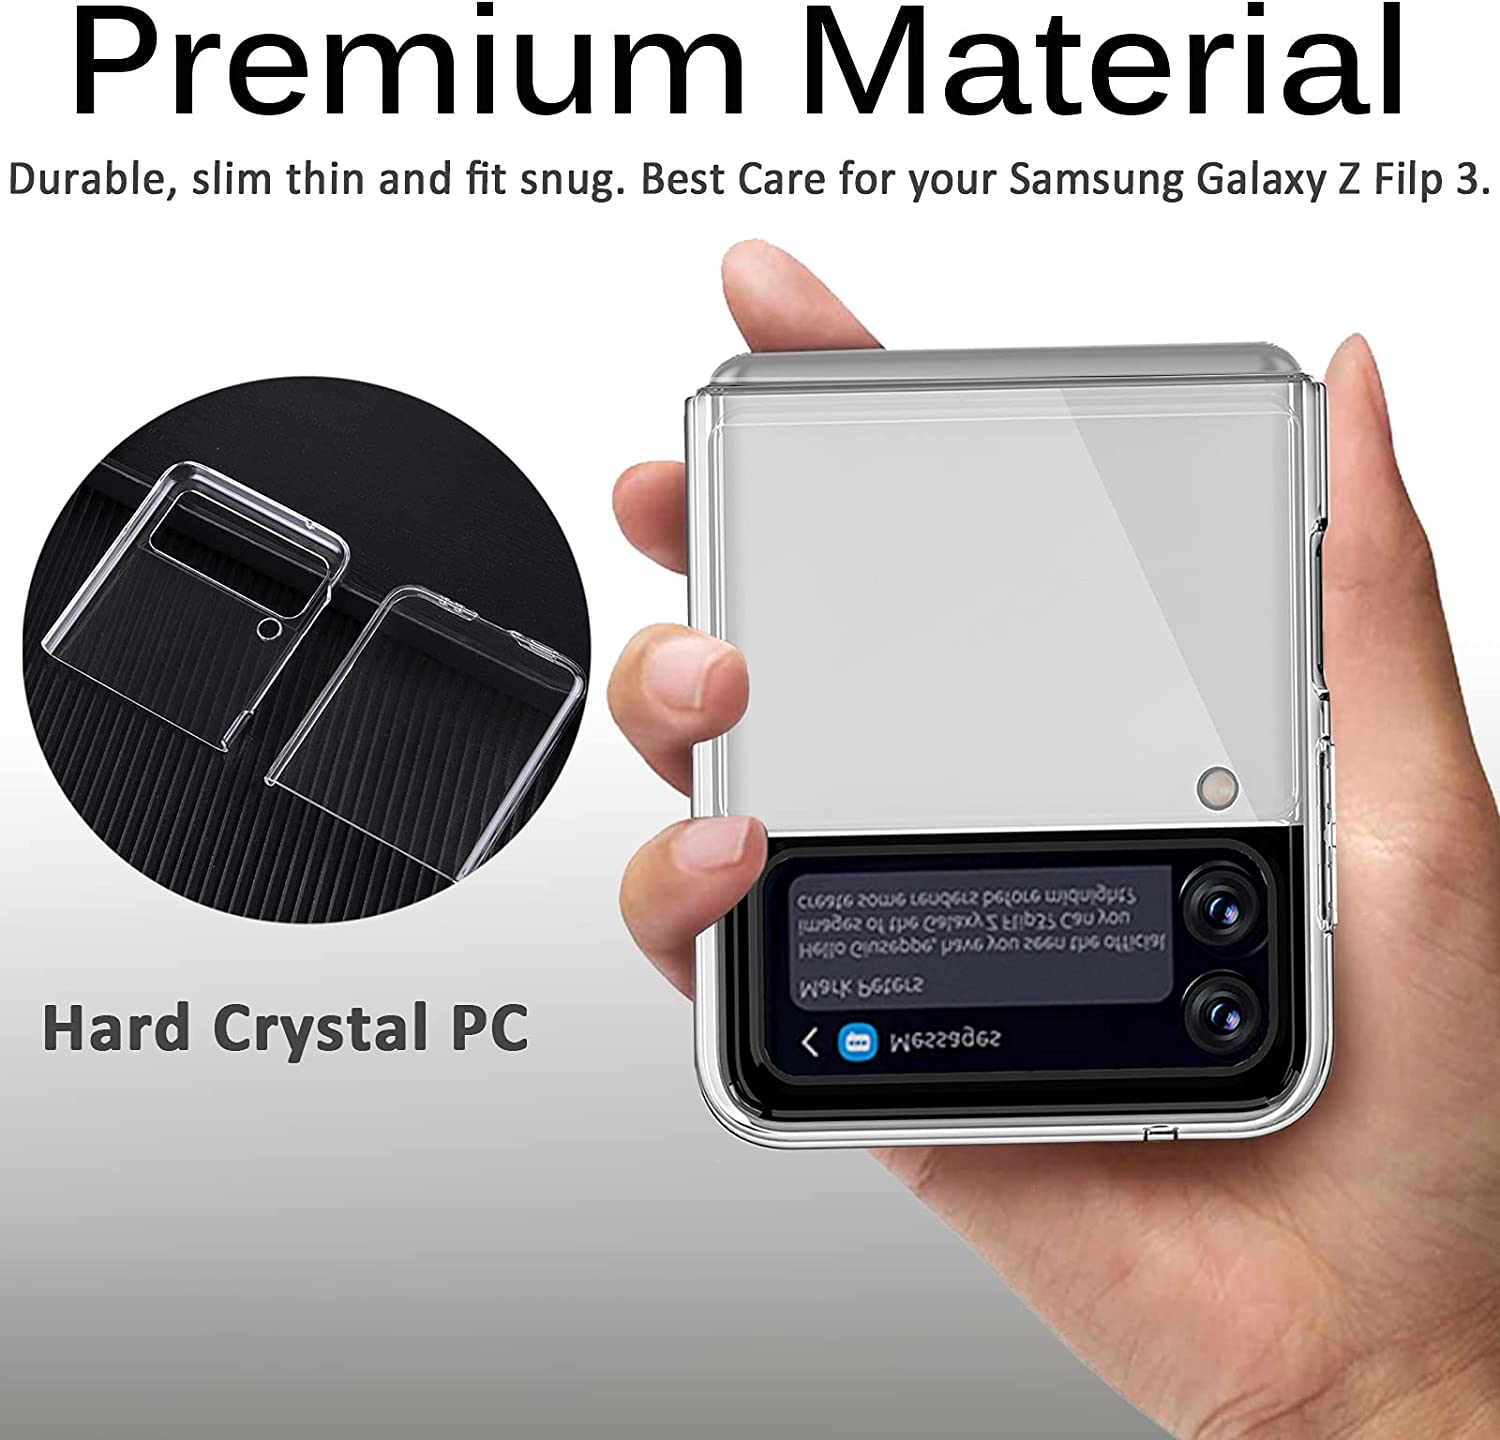 Miimall Compatible with Samsung Galaxy Z Flip 3 2021 Clear Case,Galaxy Z Flip 3 Case Ultra-Thin Crystal Hard PC Bumper Anti-Scratch Waterproof Cover Case for Samsung Galaxy Z Flip 3 Flip 3 5G 2021